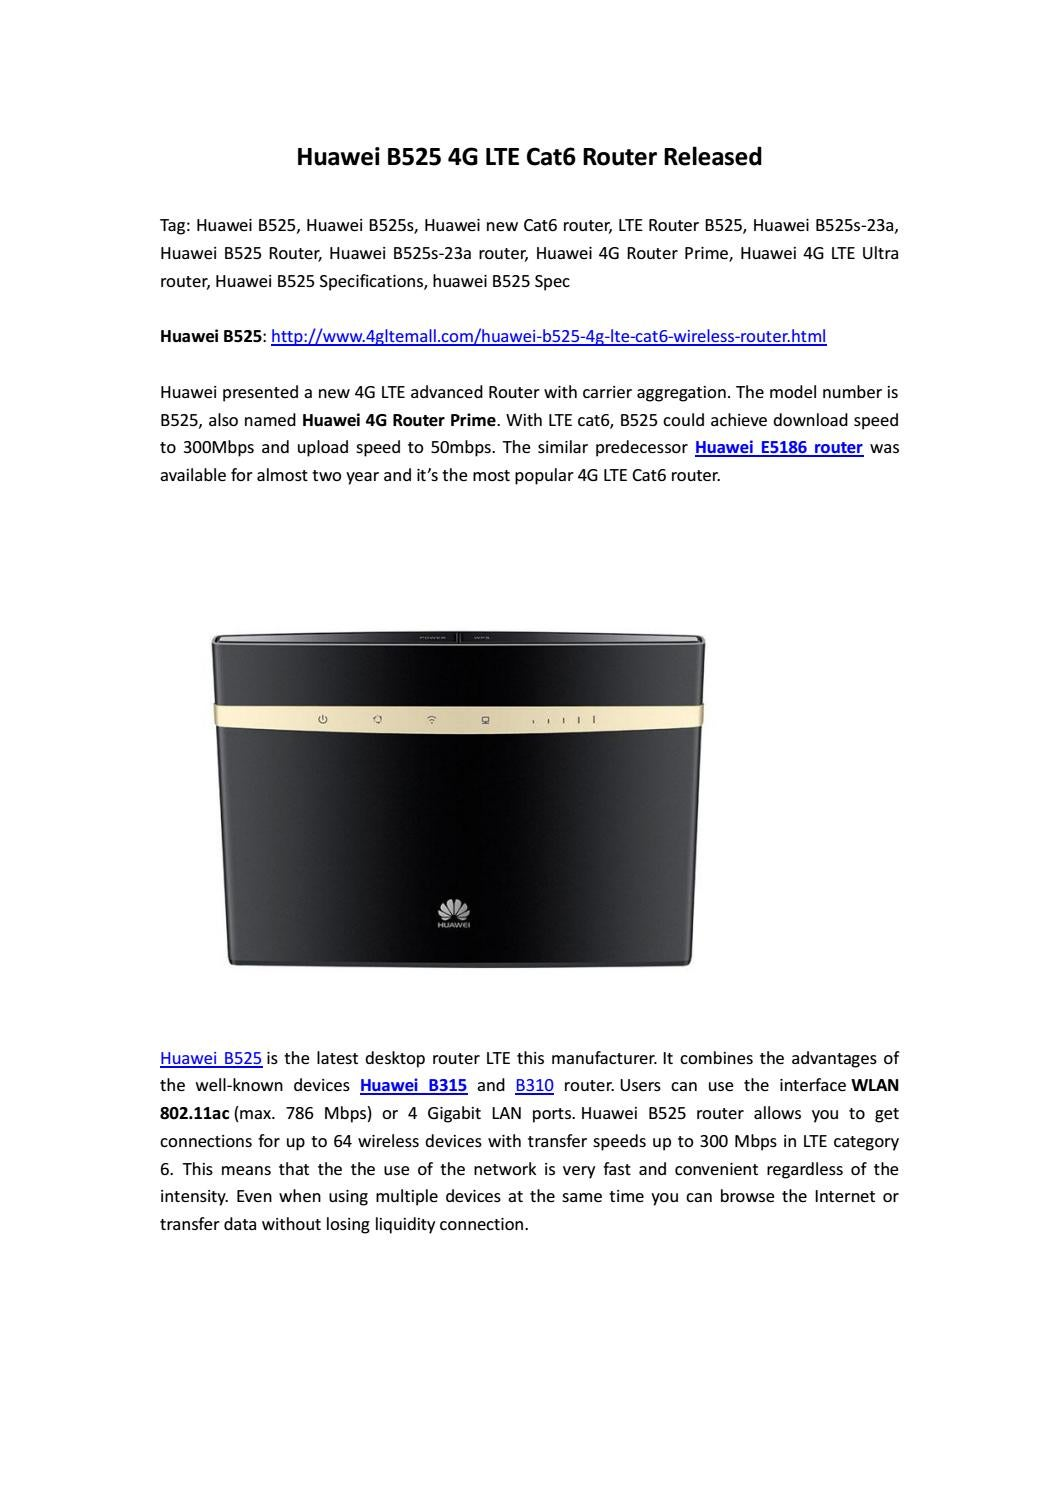 Huawei B525 4G LTE Cat6 Router Released by Lte Mall - issuu